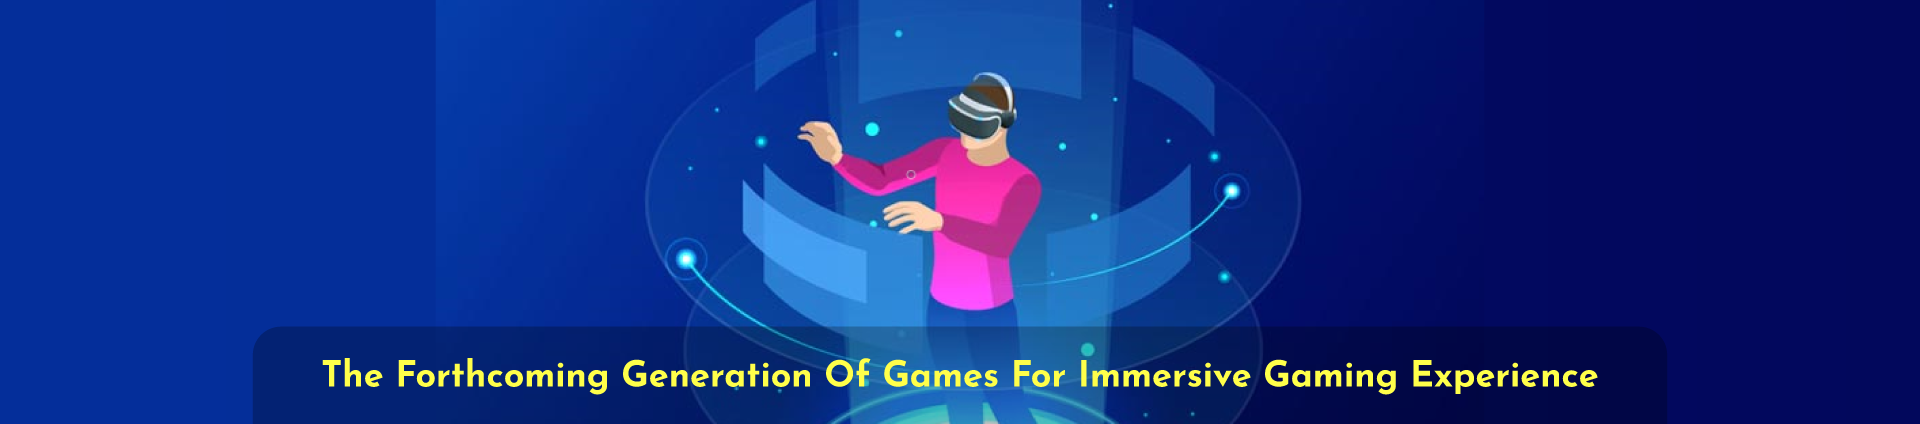 Augmented Reality Games - Immersive Gaming Experience